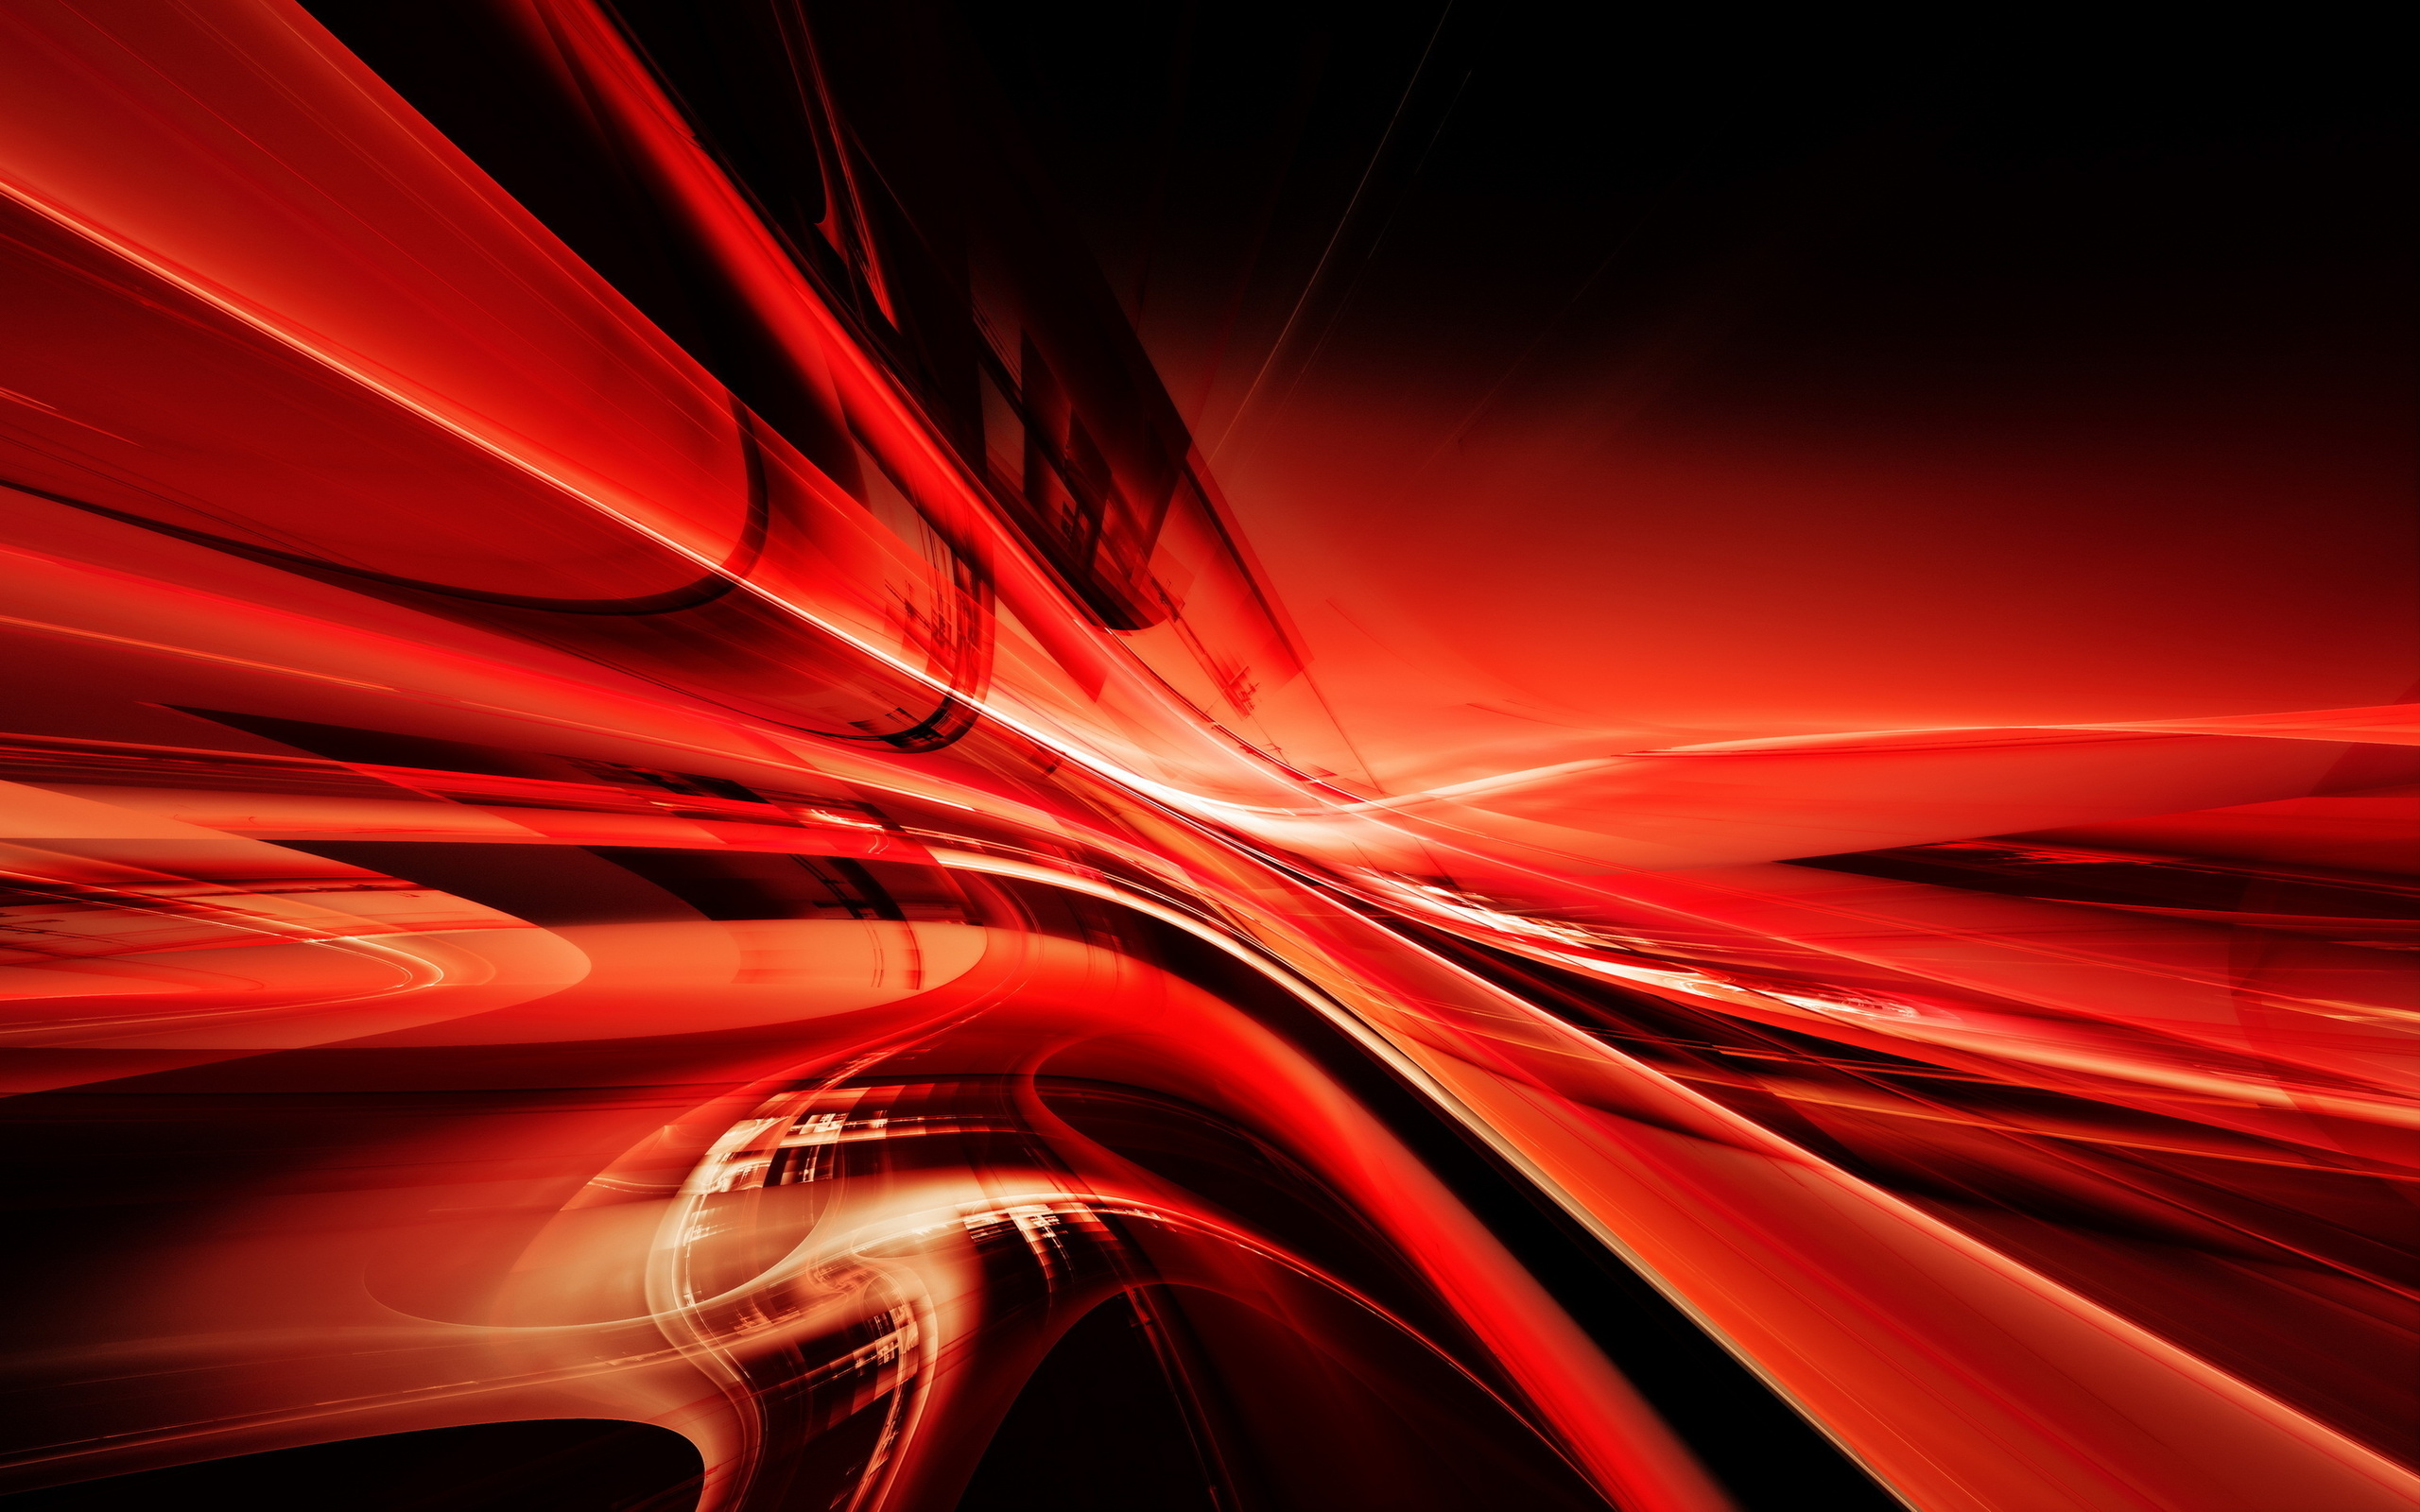 Abstract 3d hd 3d 4k wallpapers images backgrounds for Modern 3d wallpaper